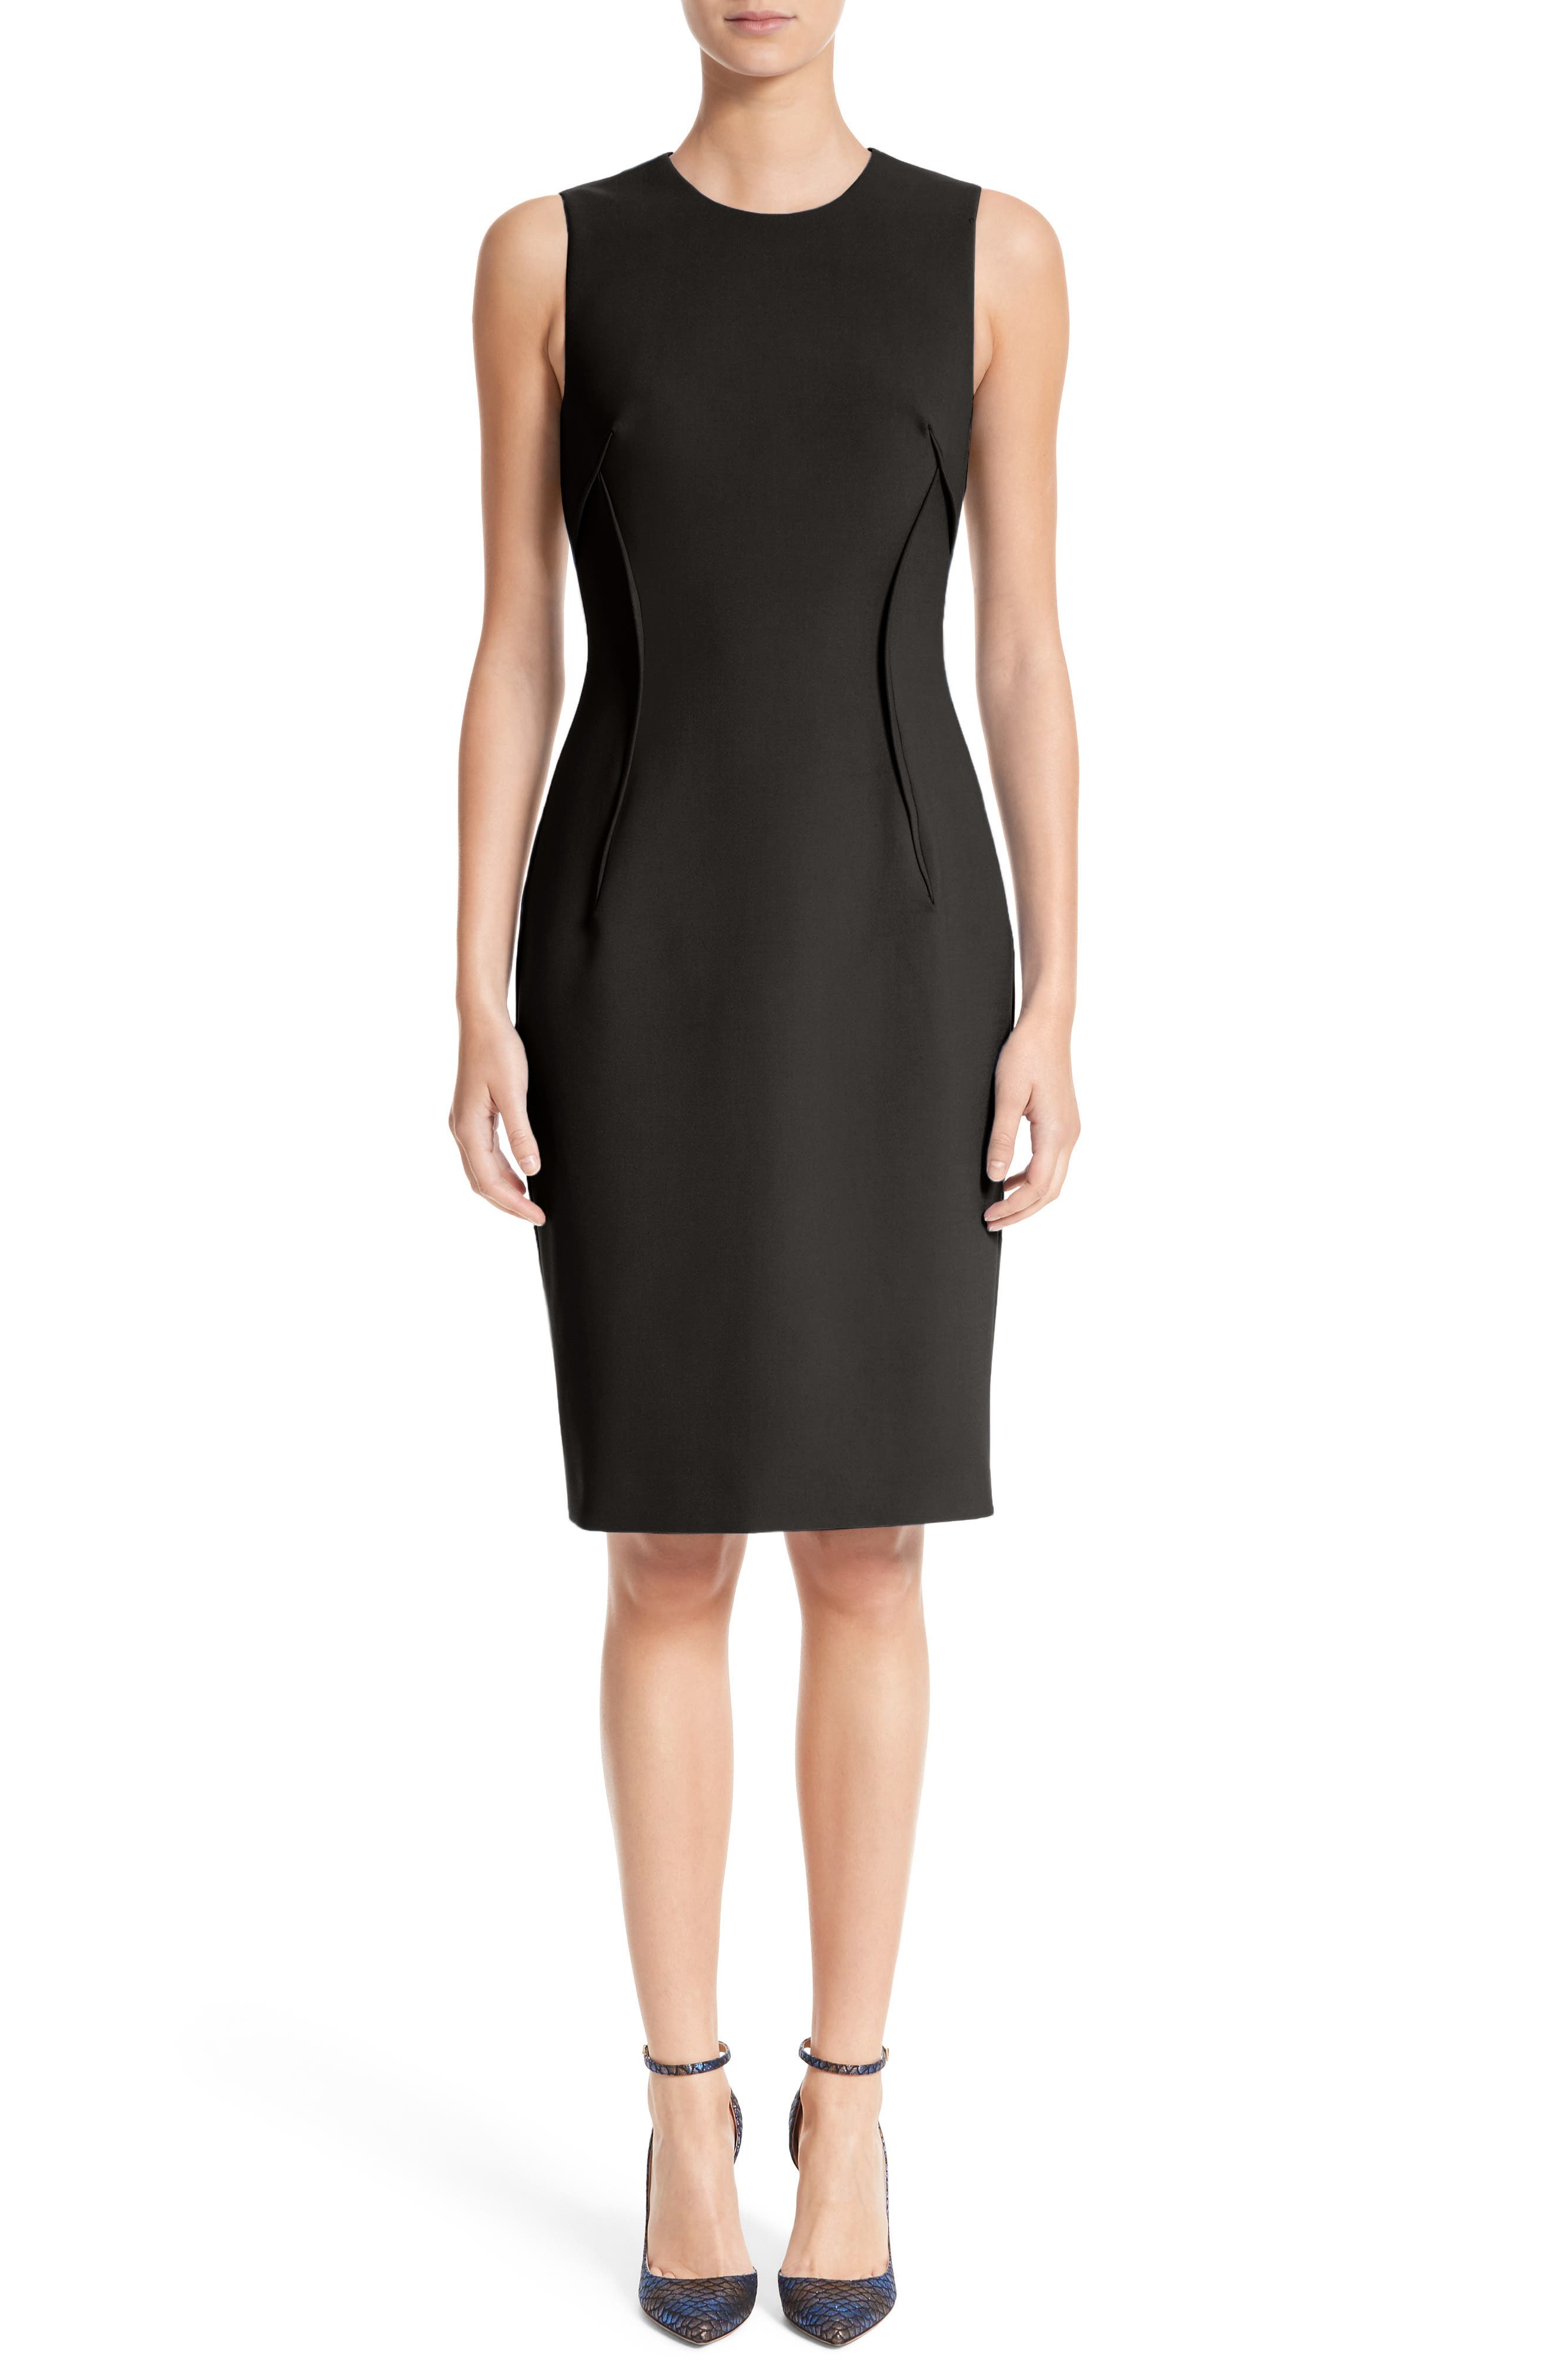 VERSACE COLLECTION, Stretch Cady Sheath Dress, Main thumbnail 1, color, BLACK